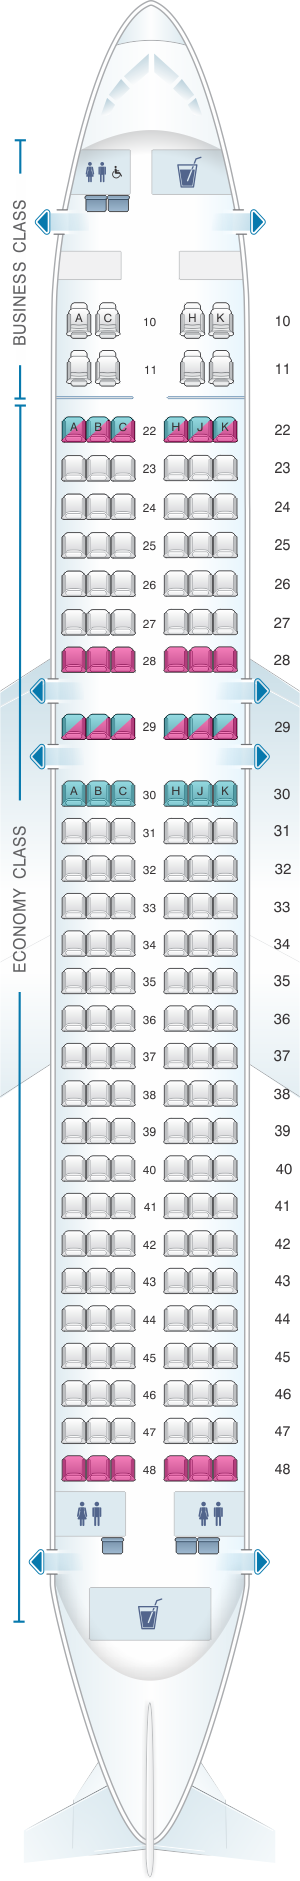 cathay pacific 333 seat map Seat Map Cathay Dragon Airbus A320 200 Airlines Airbus Map cathay pacific 333 seat map